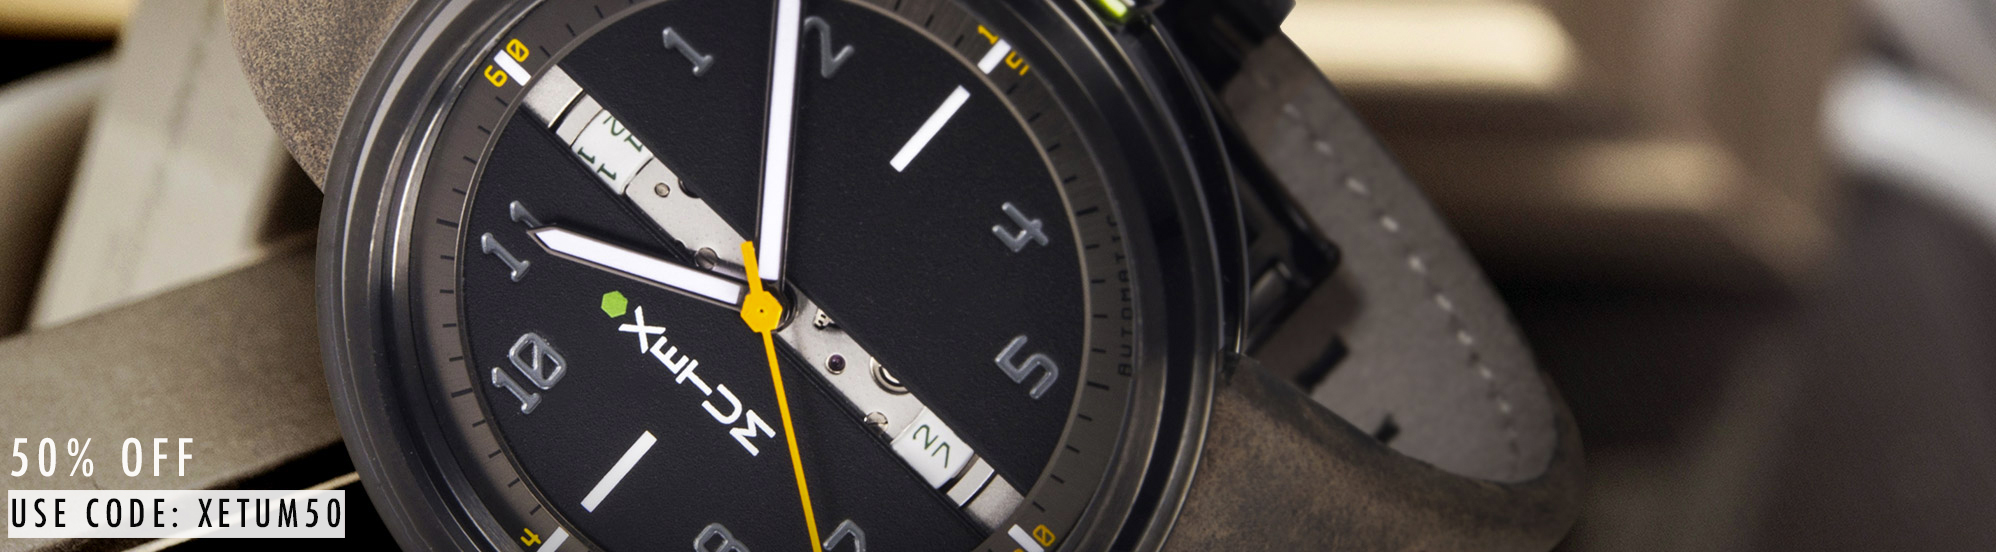 Automatic Watches - Lyell - Fashion Watches for Men | Xetum